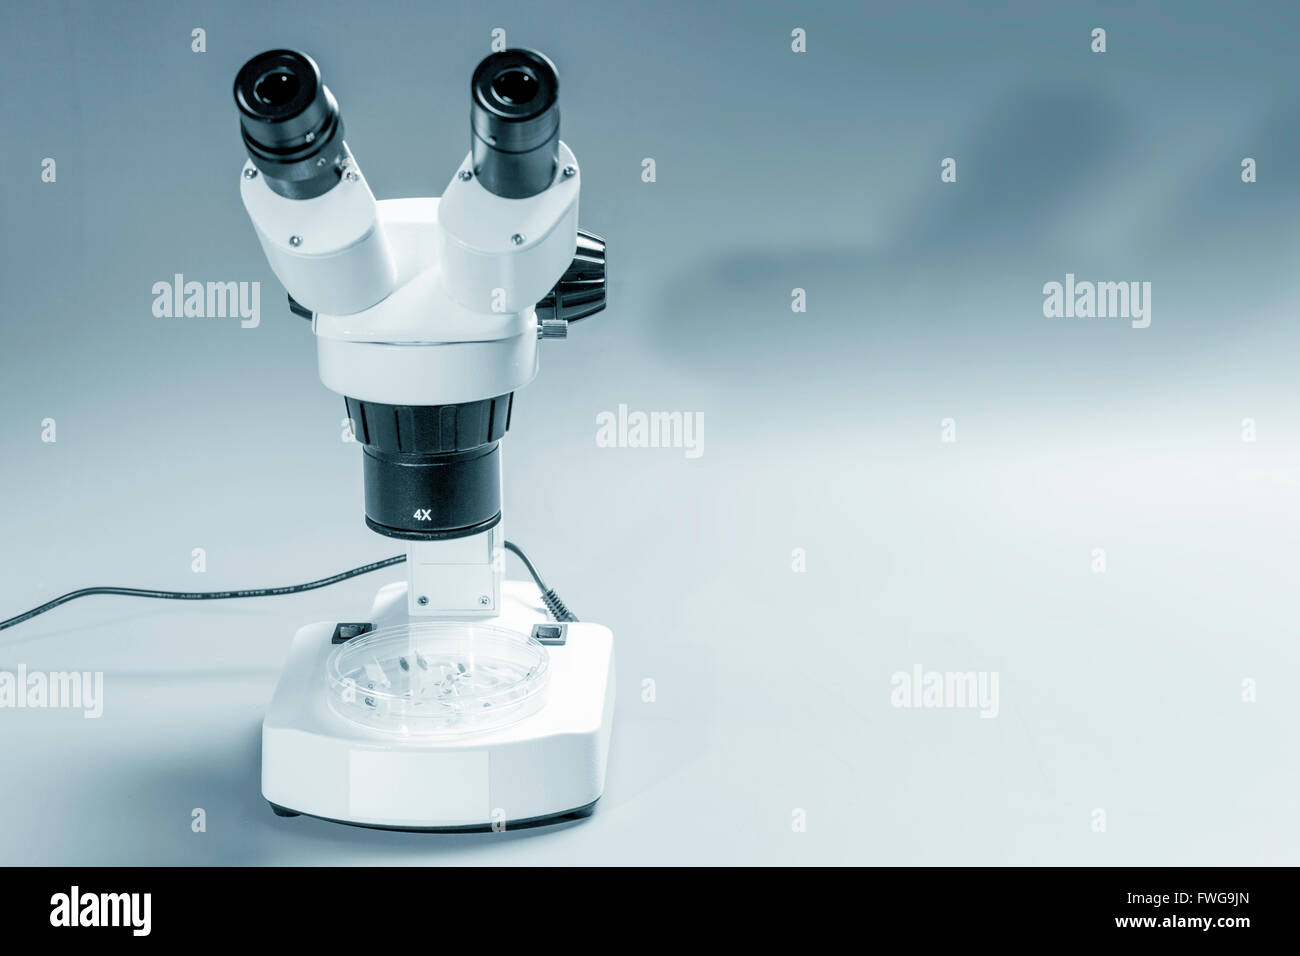 Medical microscope against a grey background. - Stock Image